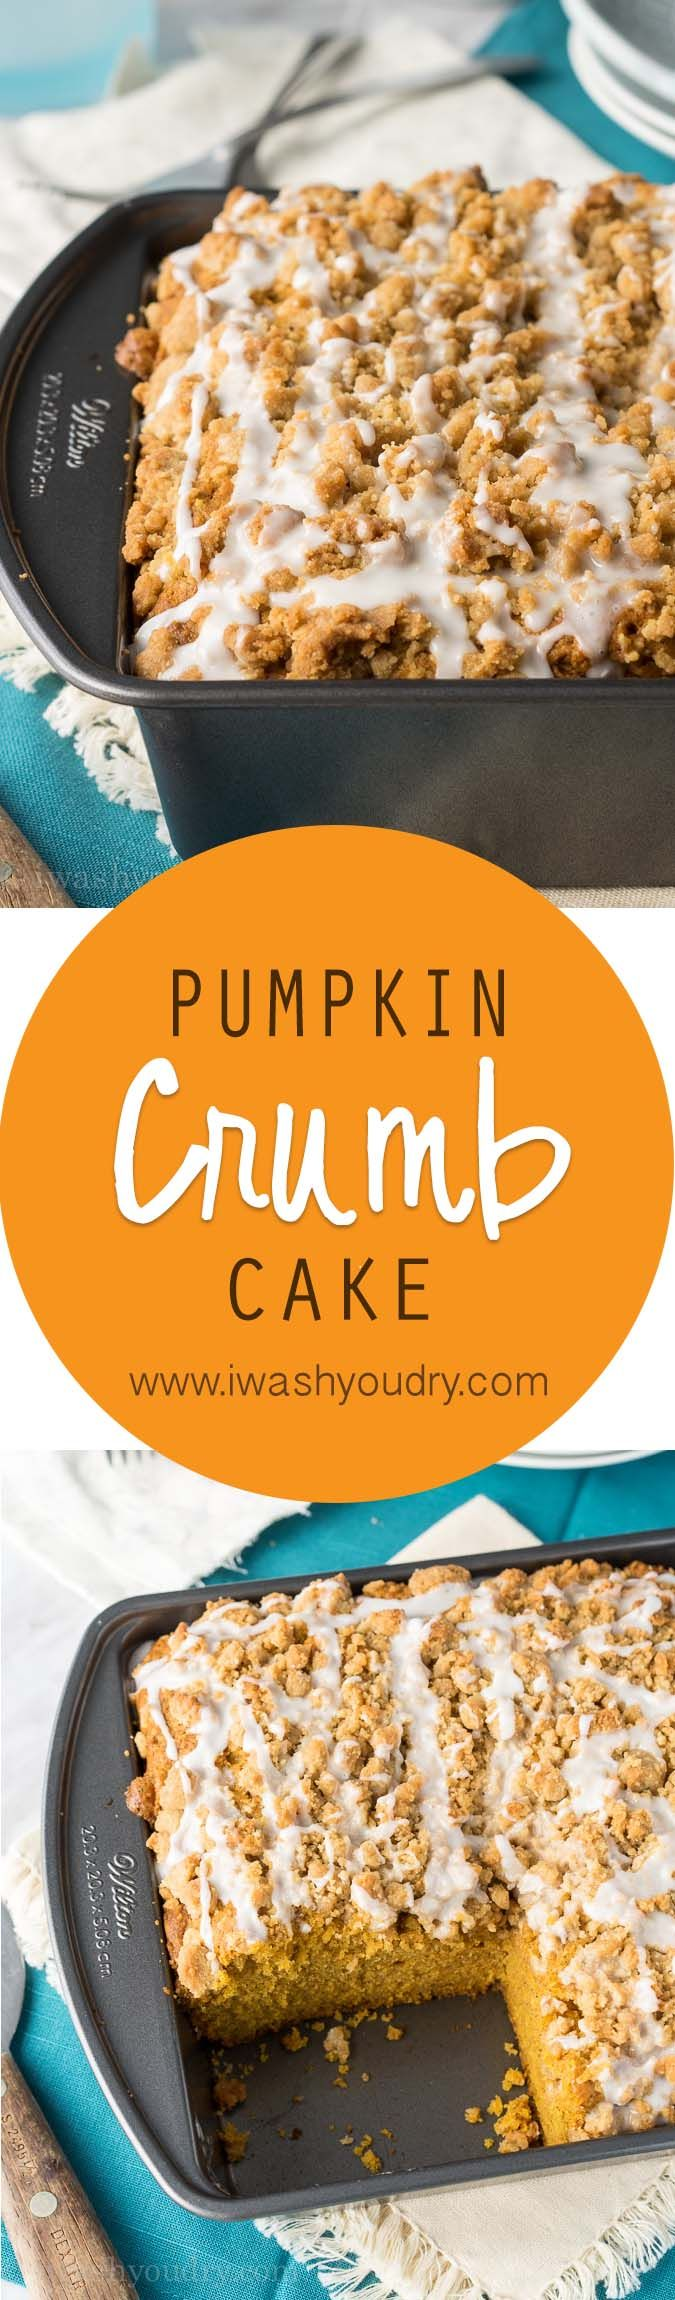 The most soft and delicious Pumpkin Crumb Cake with a sweet icing drizzled over a mound of delicious crumb topping! Such a great cake for this Fall!